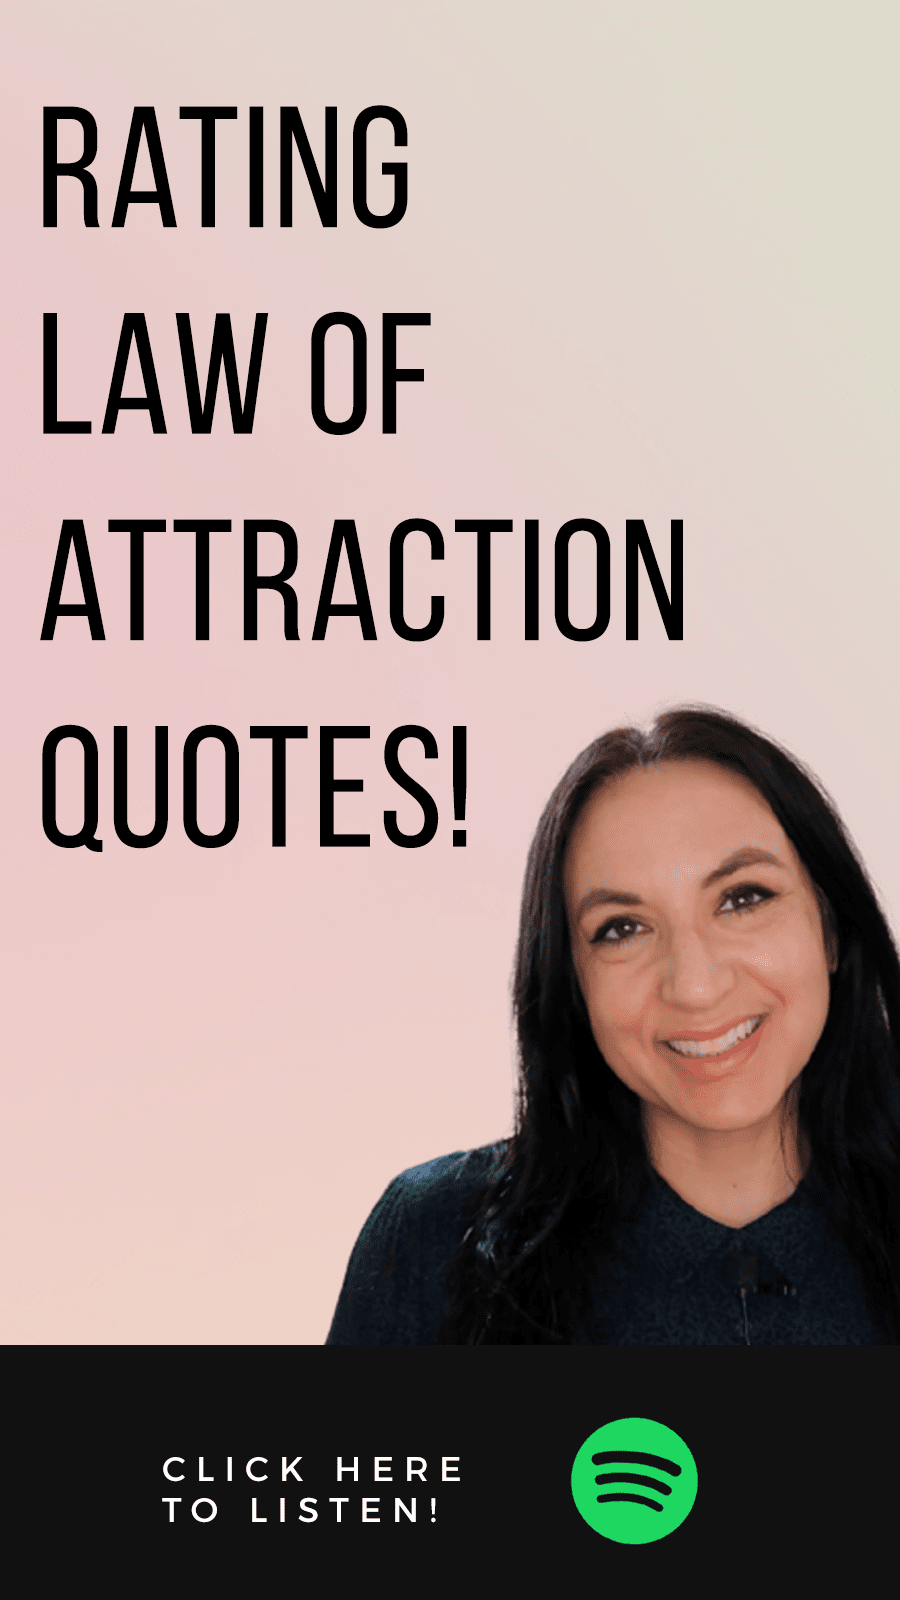 Jenn Stevens with text Episode 45: Rating Law of Attraction Quotes